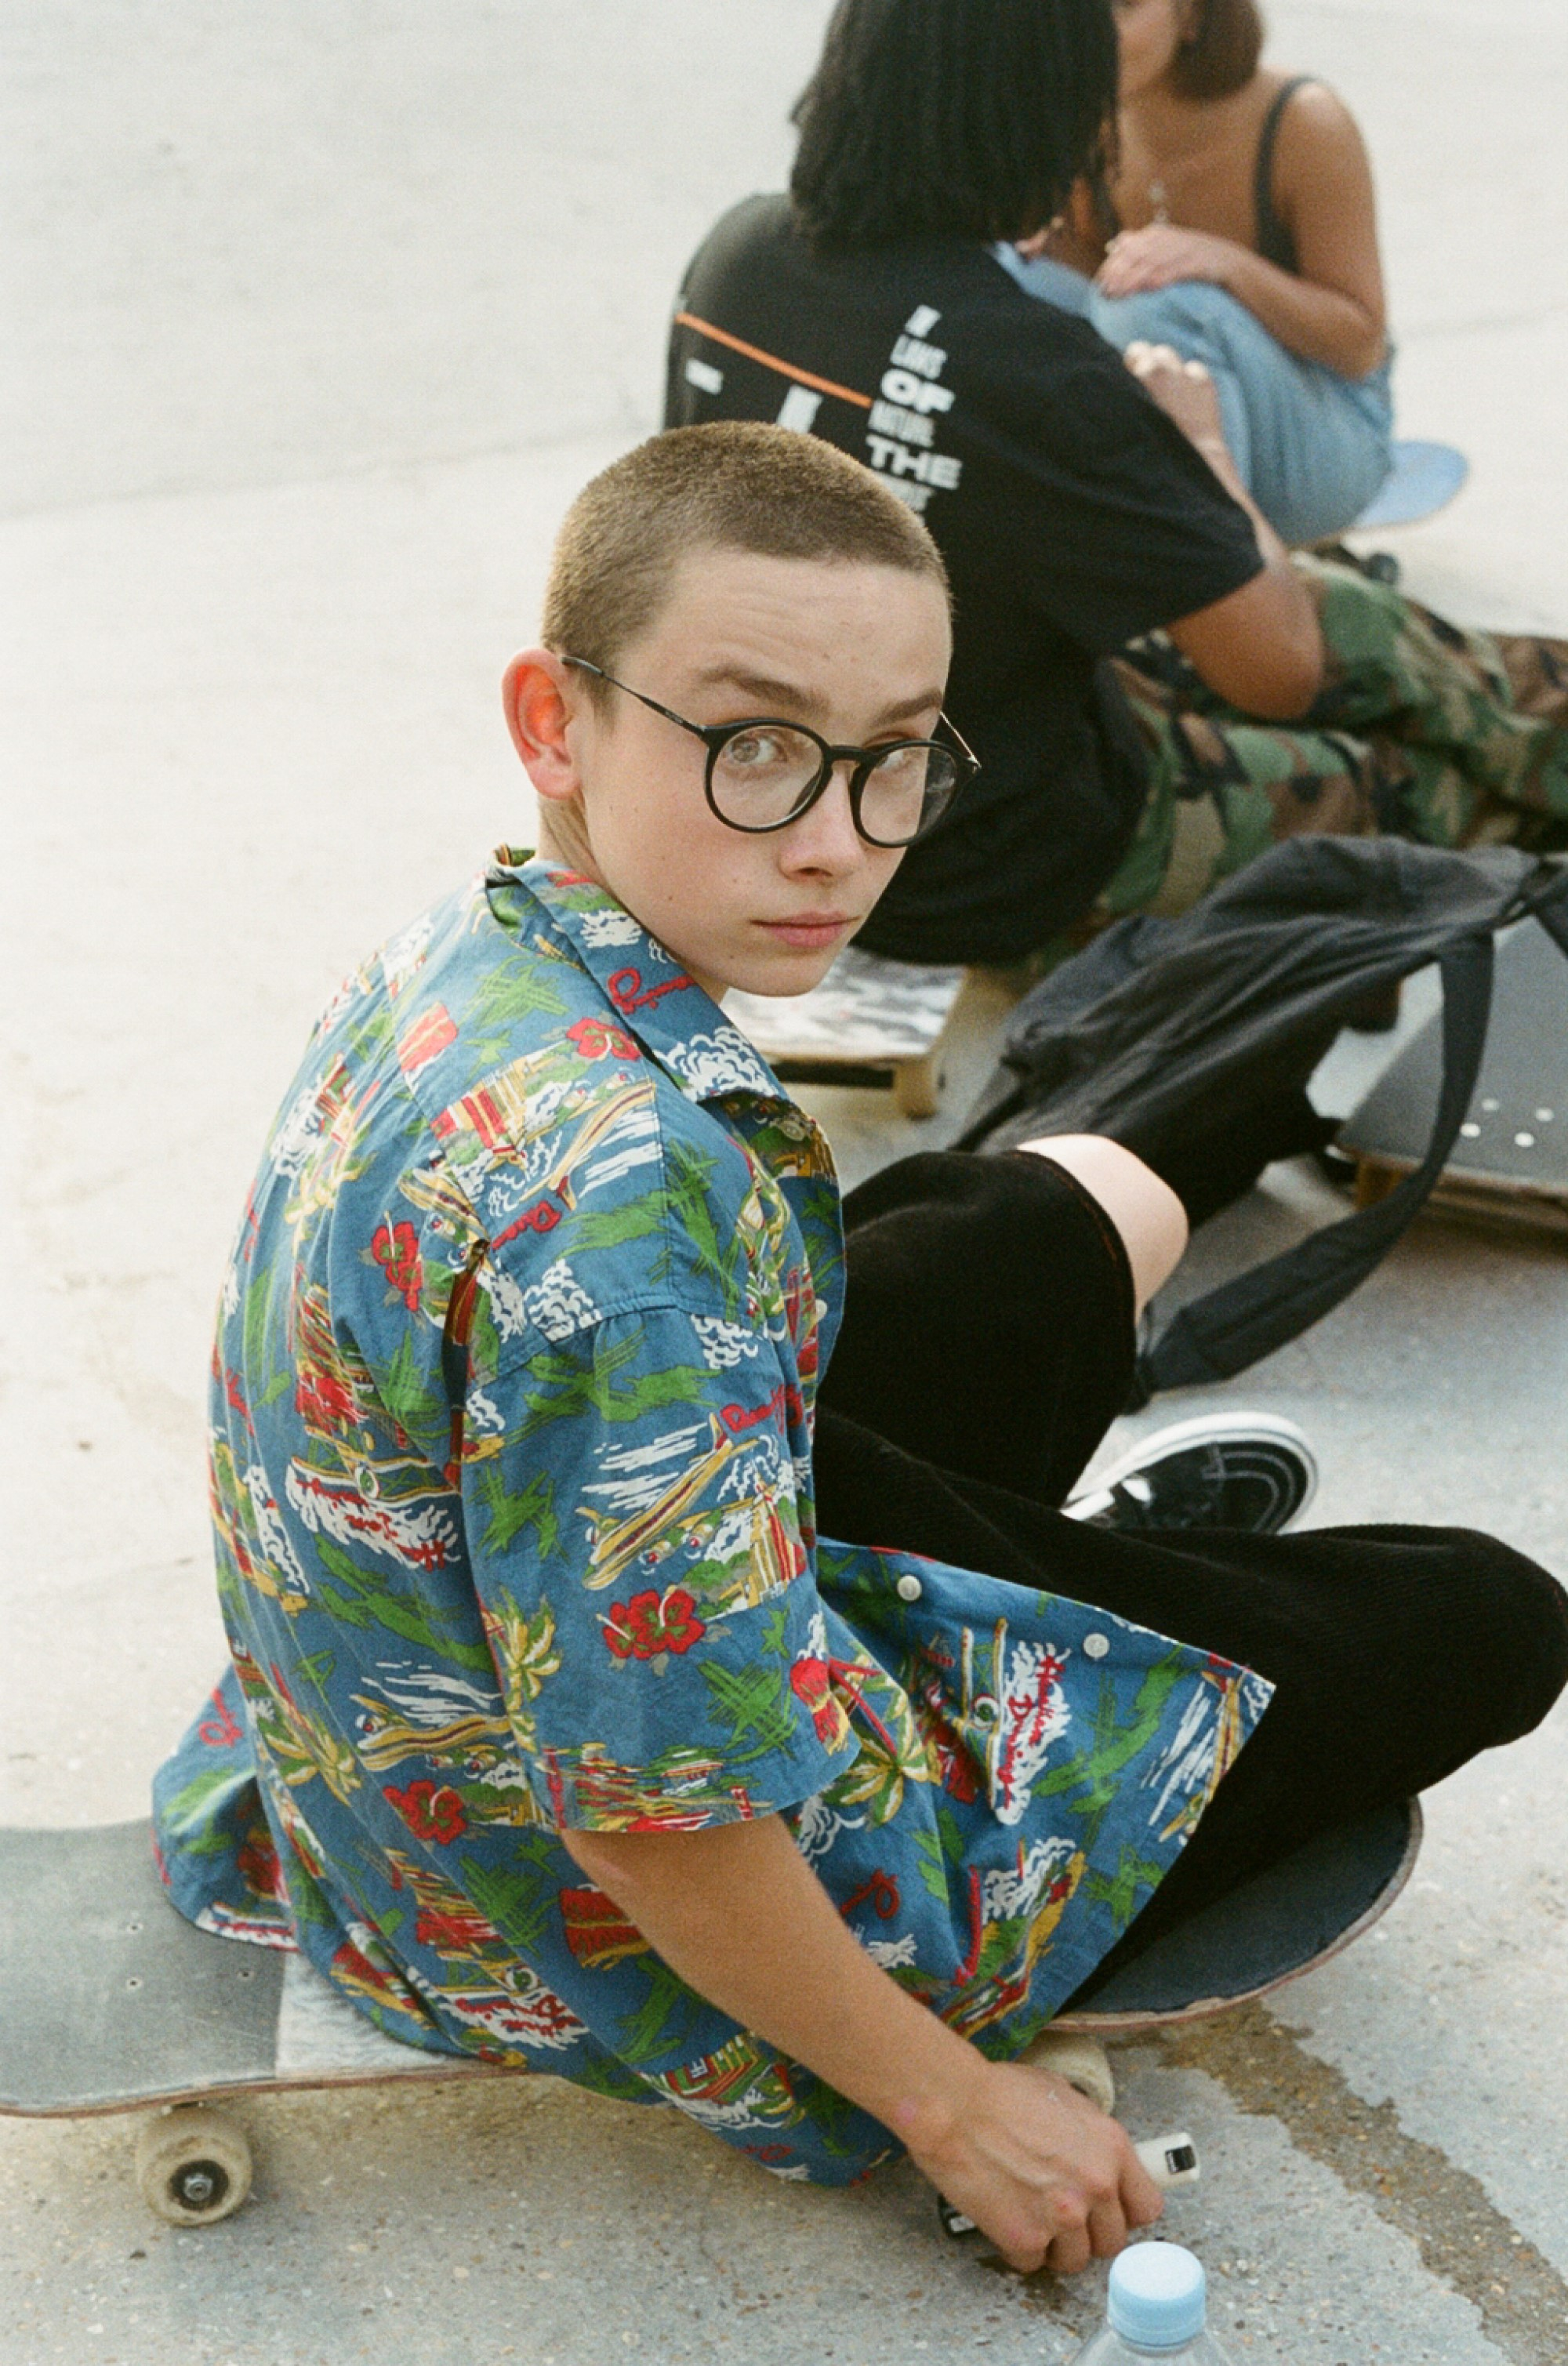 Sam Elstub analog photographer, skater, young skateboarder in blue red patterned shirt and glasses